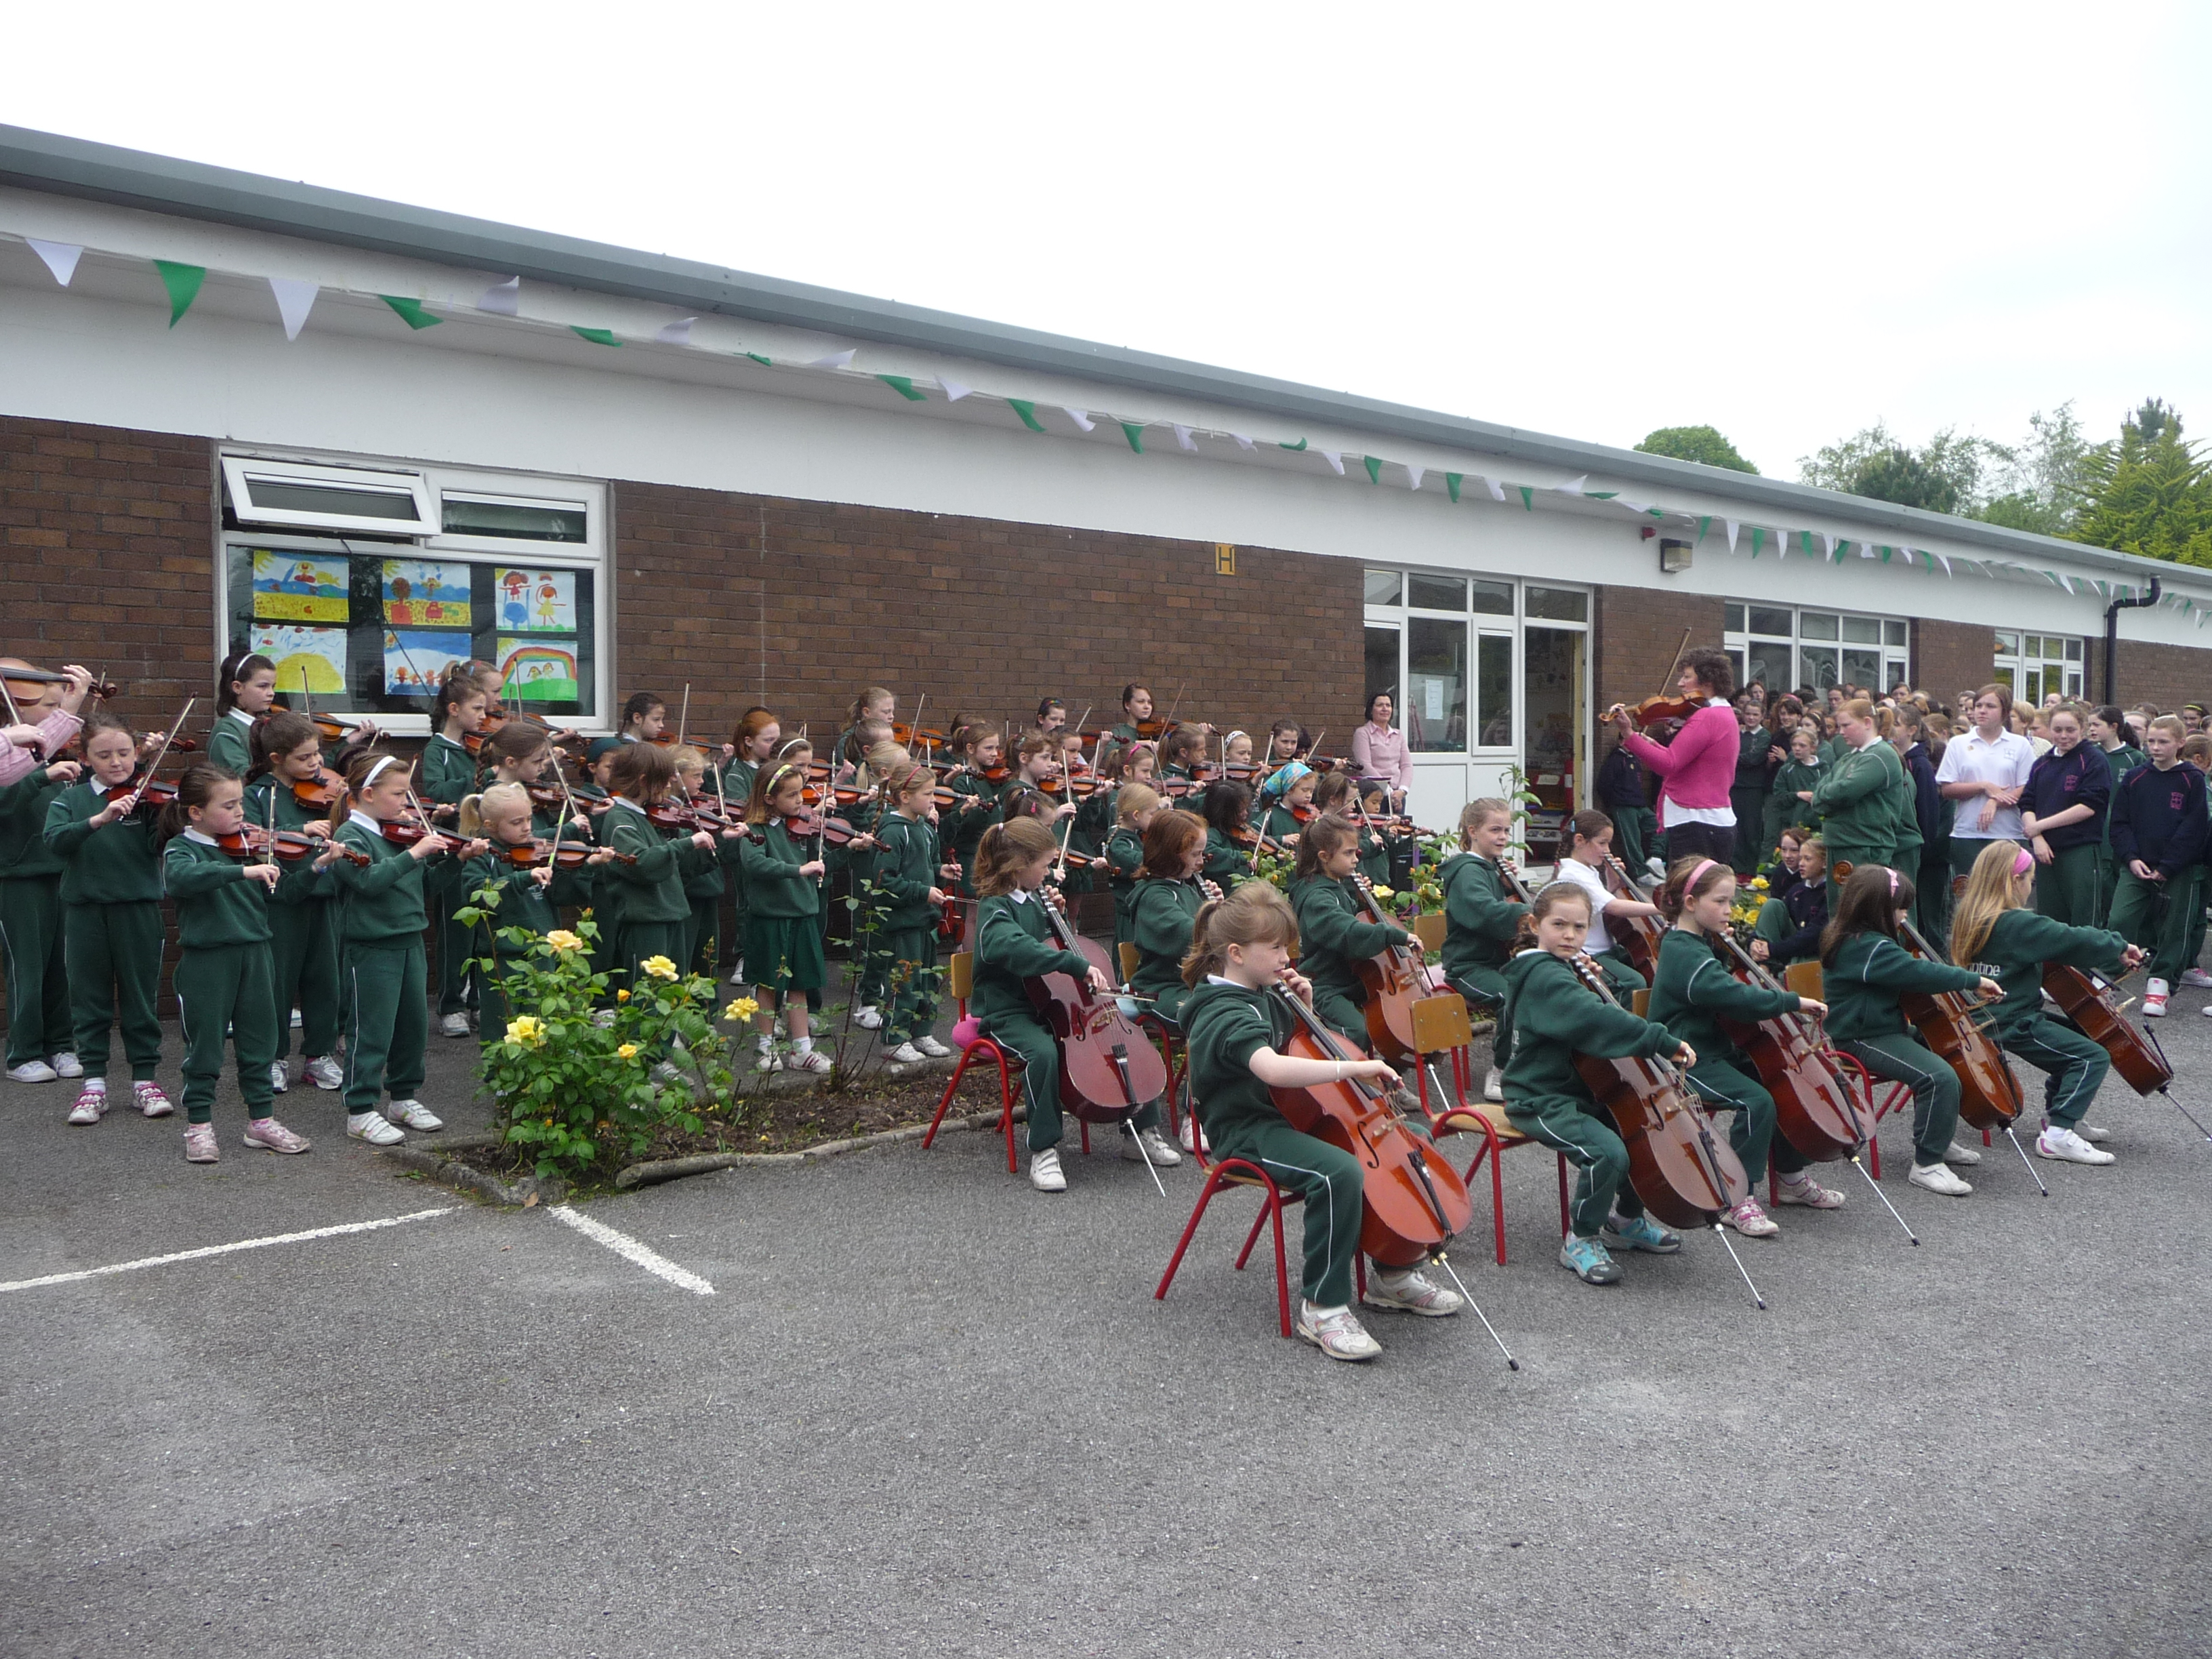 Orchestra performing outside